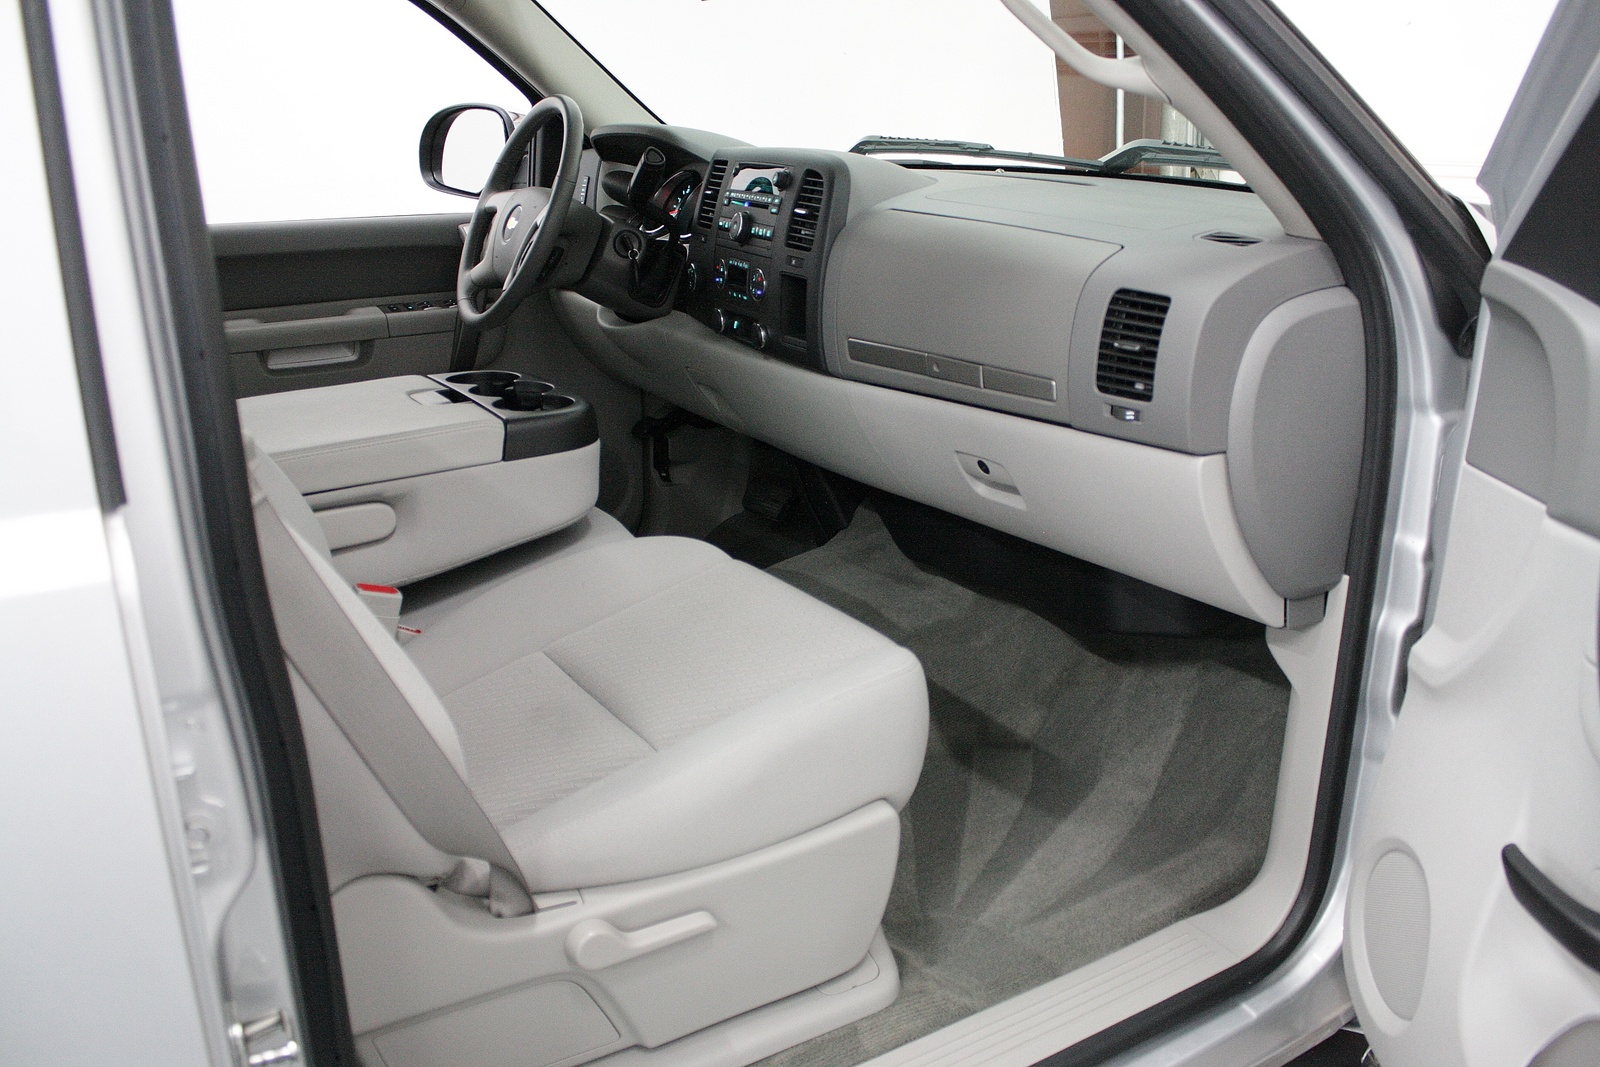 2014 Silverado 2500hd Interior Pictures Autos Weblog